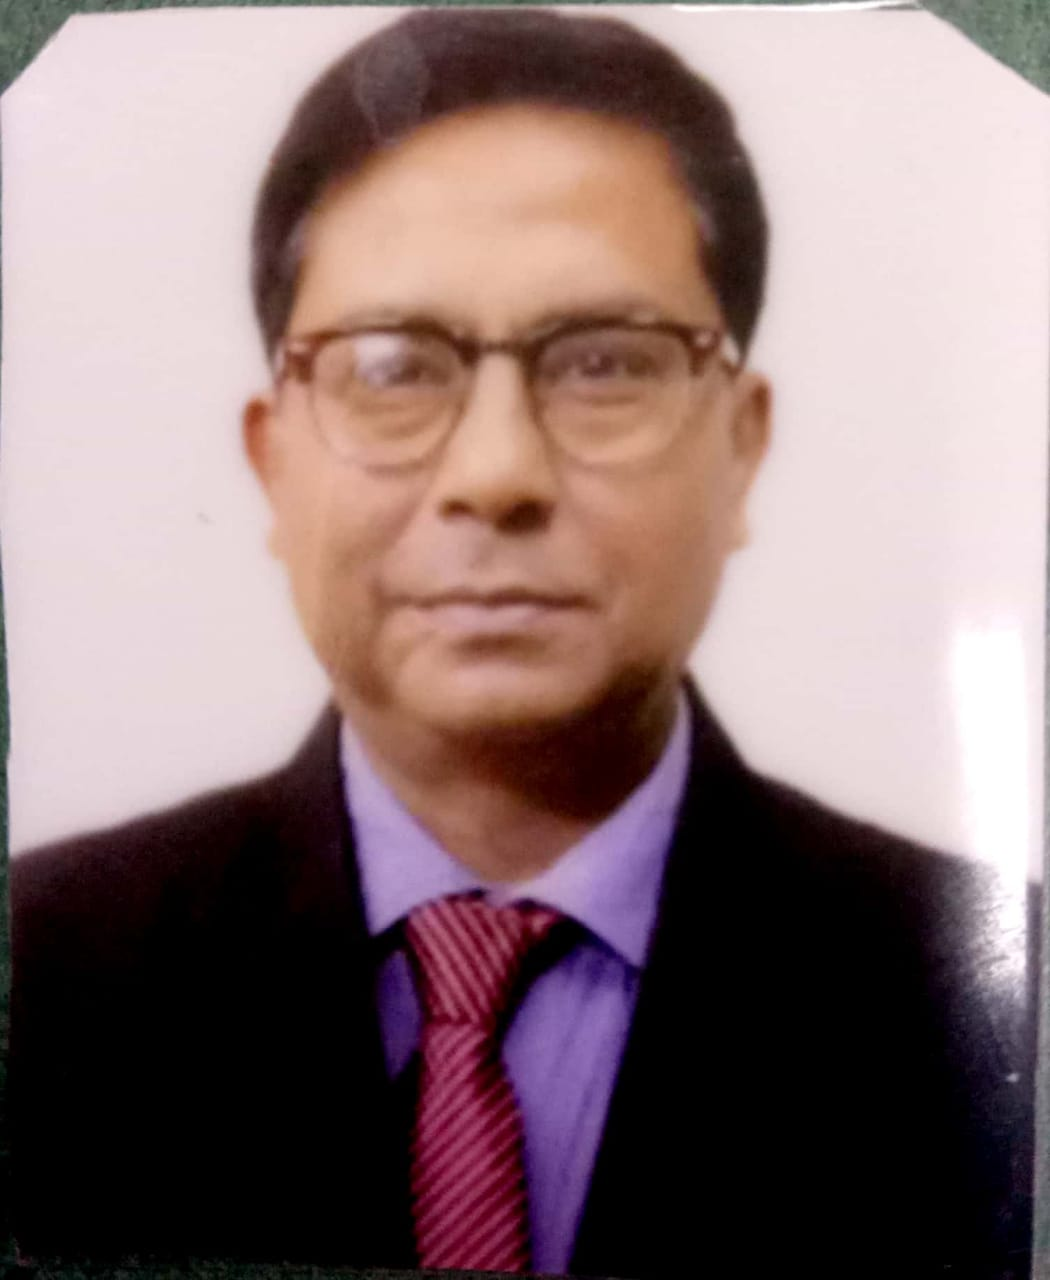 PESB Picks Shri Saumen Das Gupta for the post of Director Finance The Jute Corporation of India Ltd